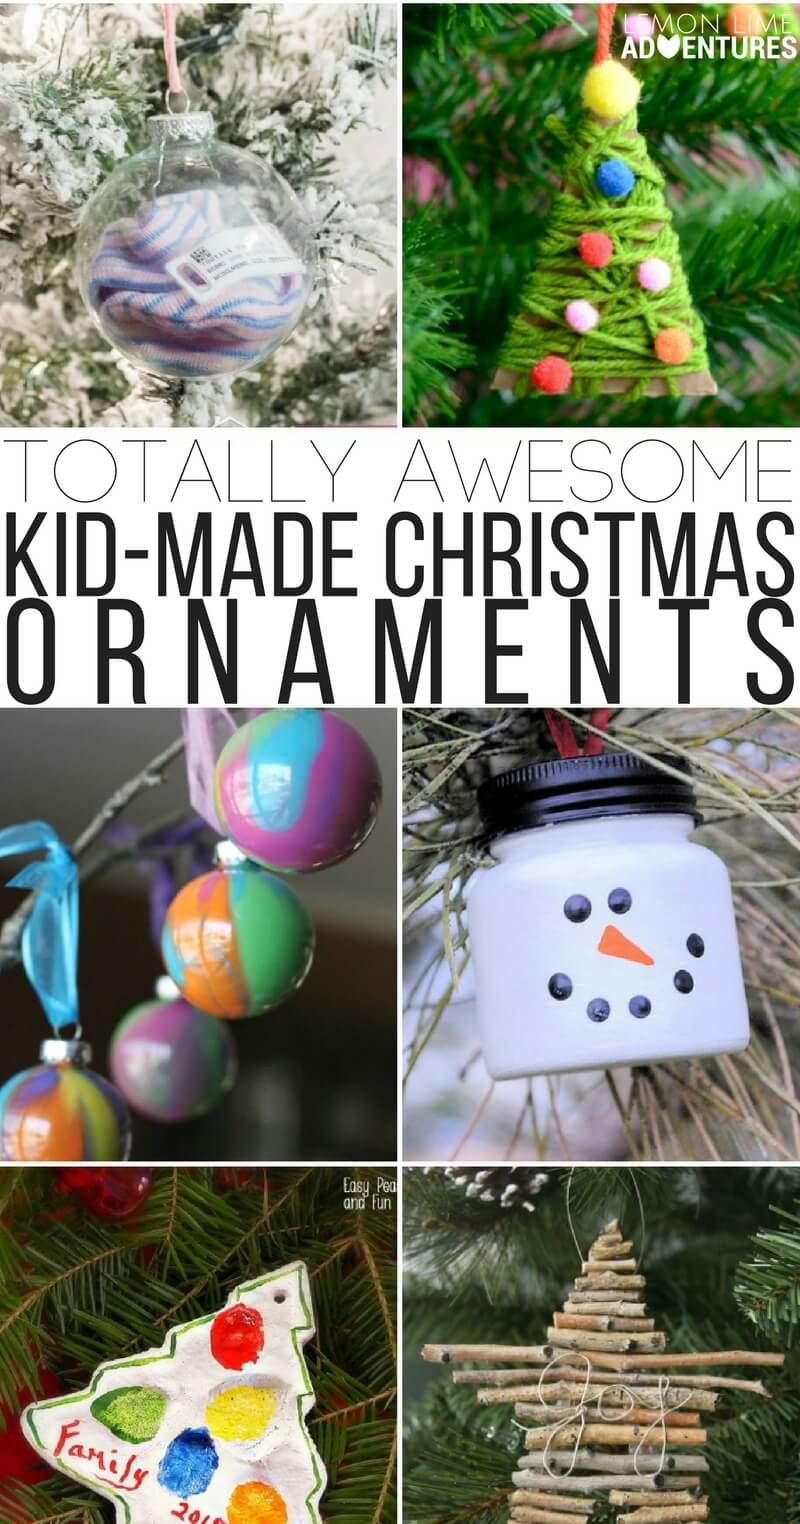 Best ideas about Kids DIY Ornaments . Save or Pin Totally Awesome Kid Made Christmas Ornaments Now.